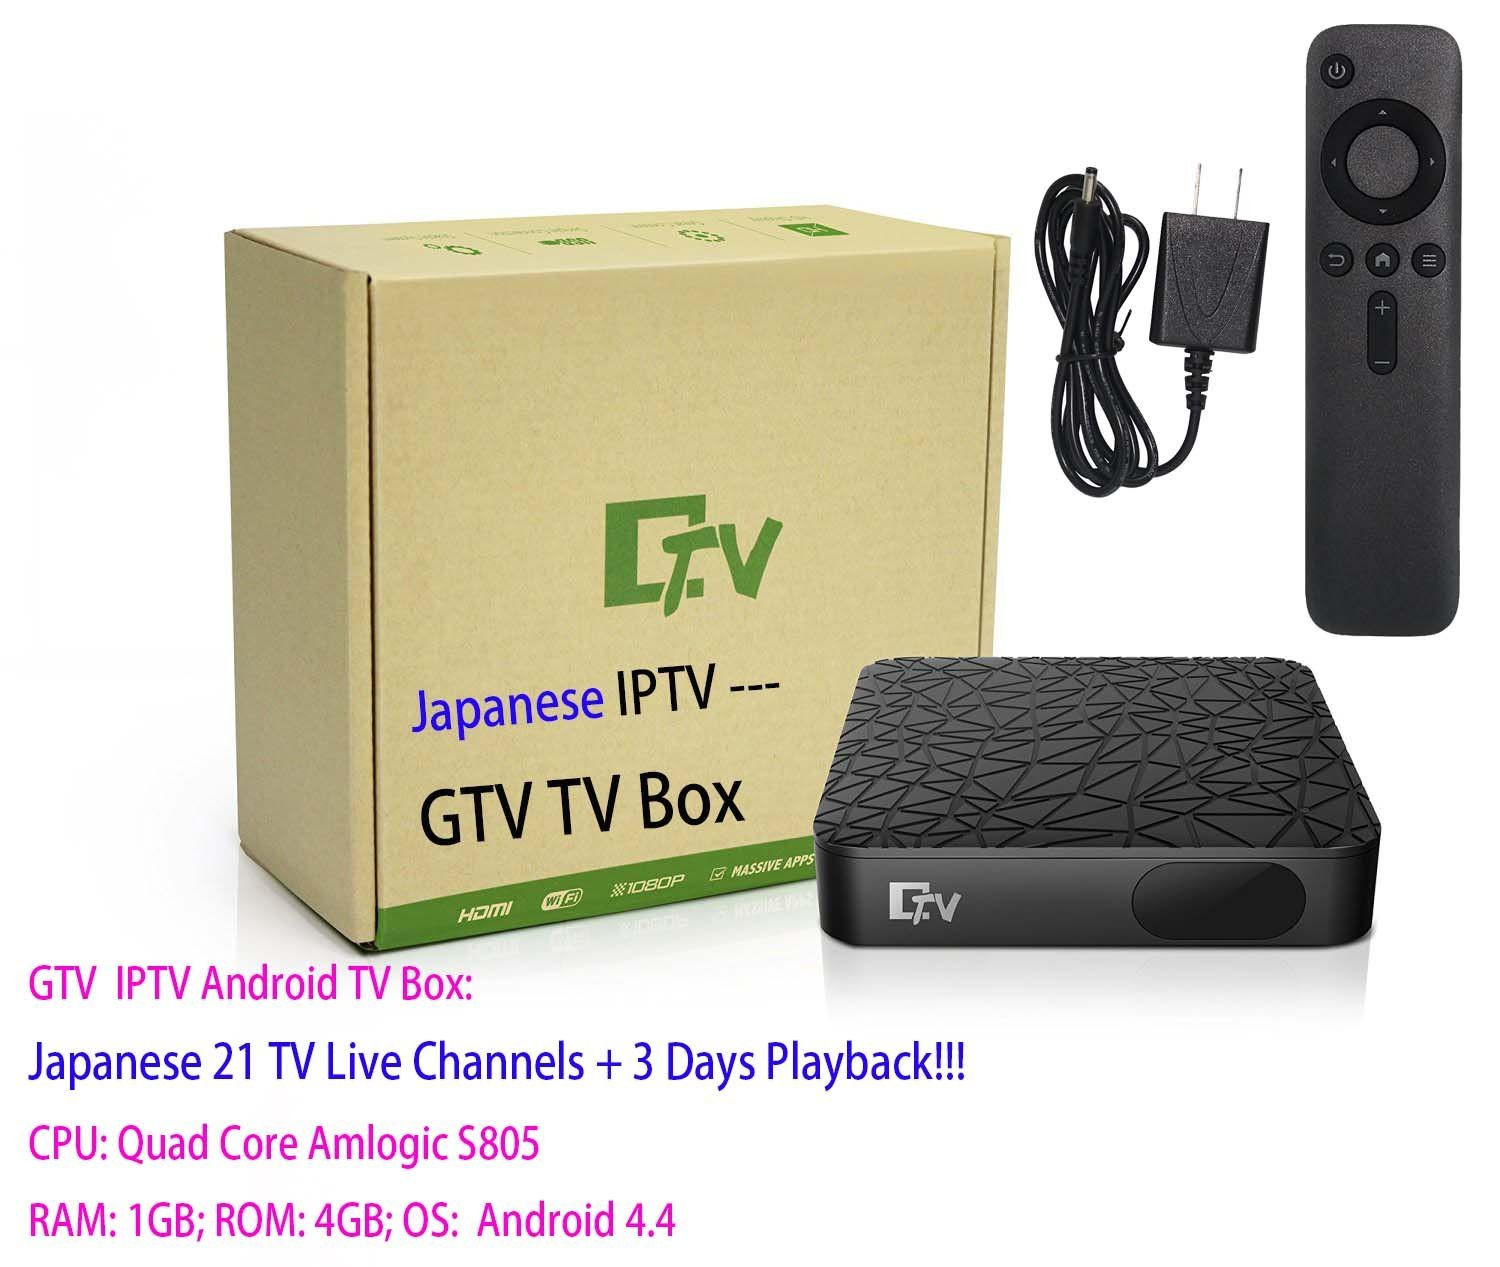 GTV M168 Android TV Box Japanese Live TV Channels & Channels playback日本のテレビチャンネルの再生 for Who Living abroad Quad Core 1GB/4GB Smart TV Box Streaming Media Player, 3 Years Channel Warranty No Monthly Fee